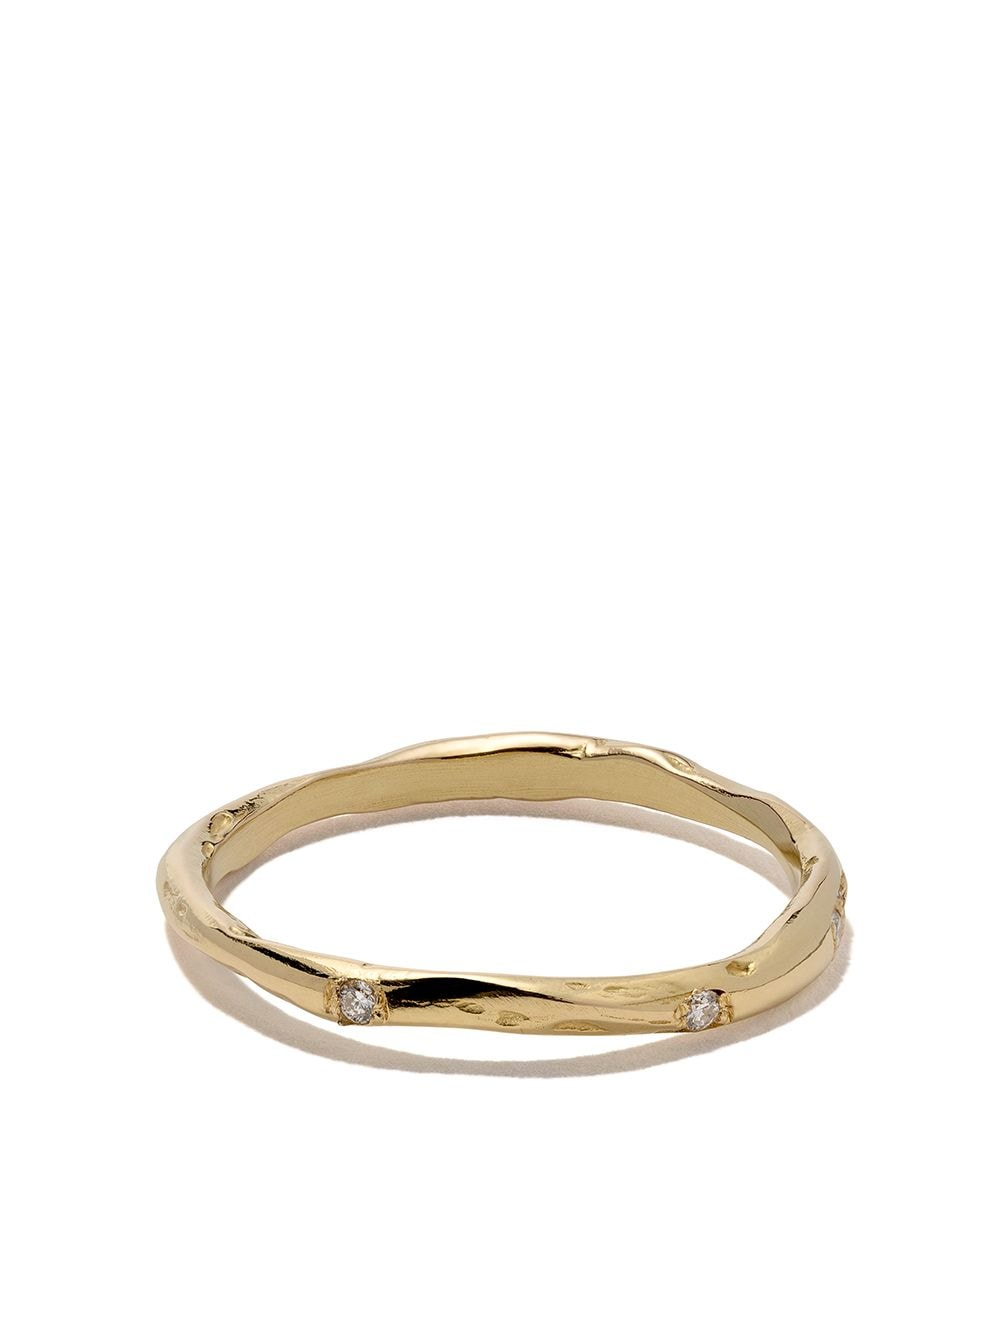 Wouters & Hendrix Gold 18kt yellow gold Diamond band von Wouters & Hendrix Gold